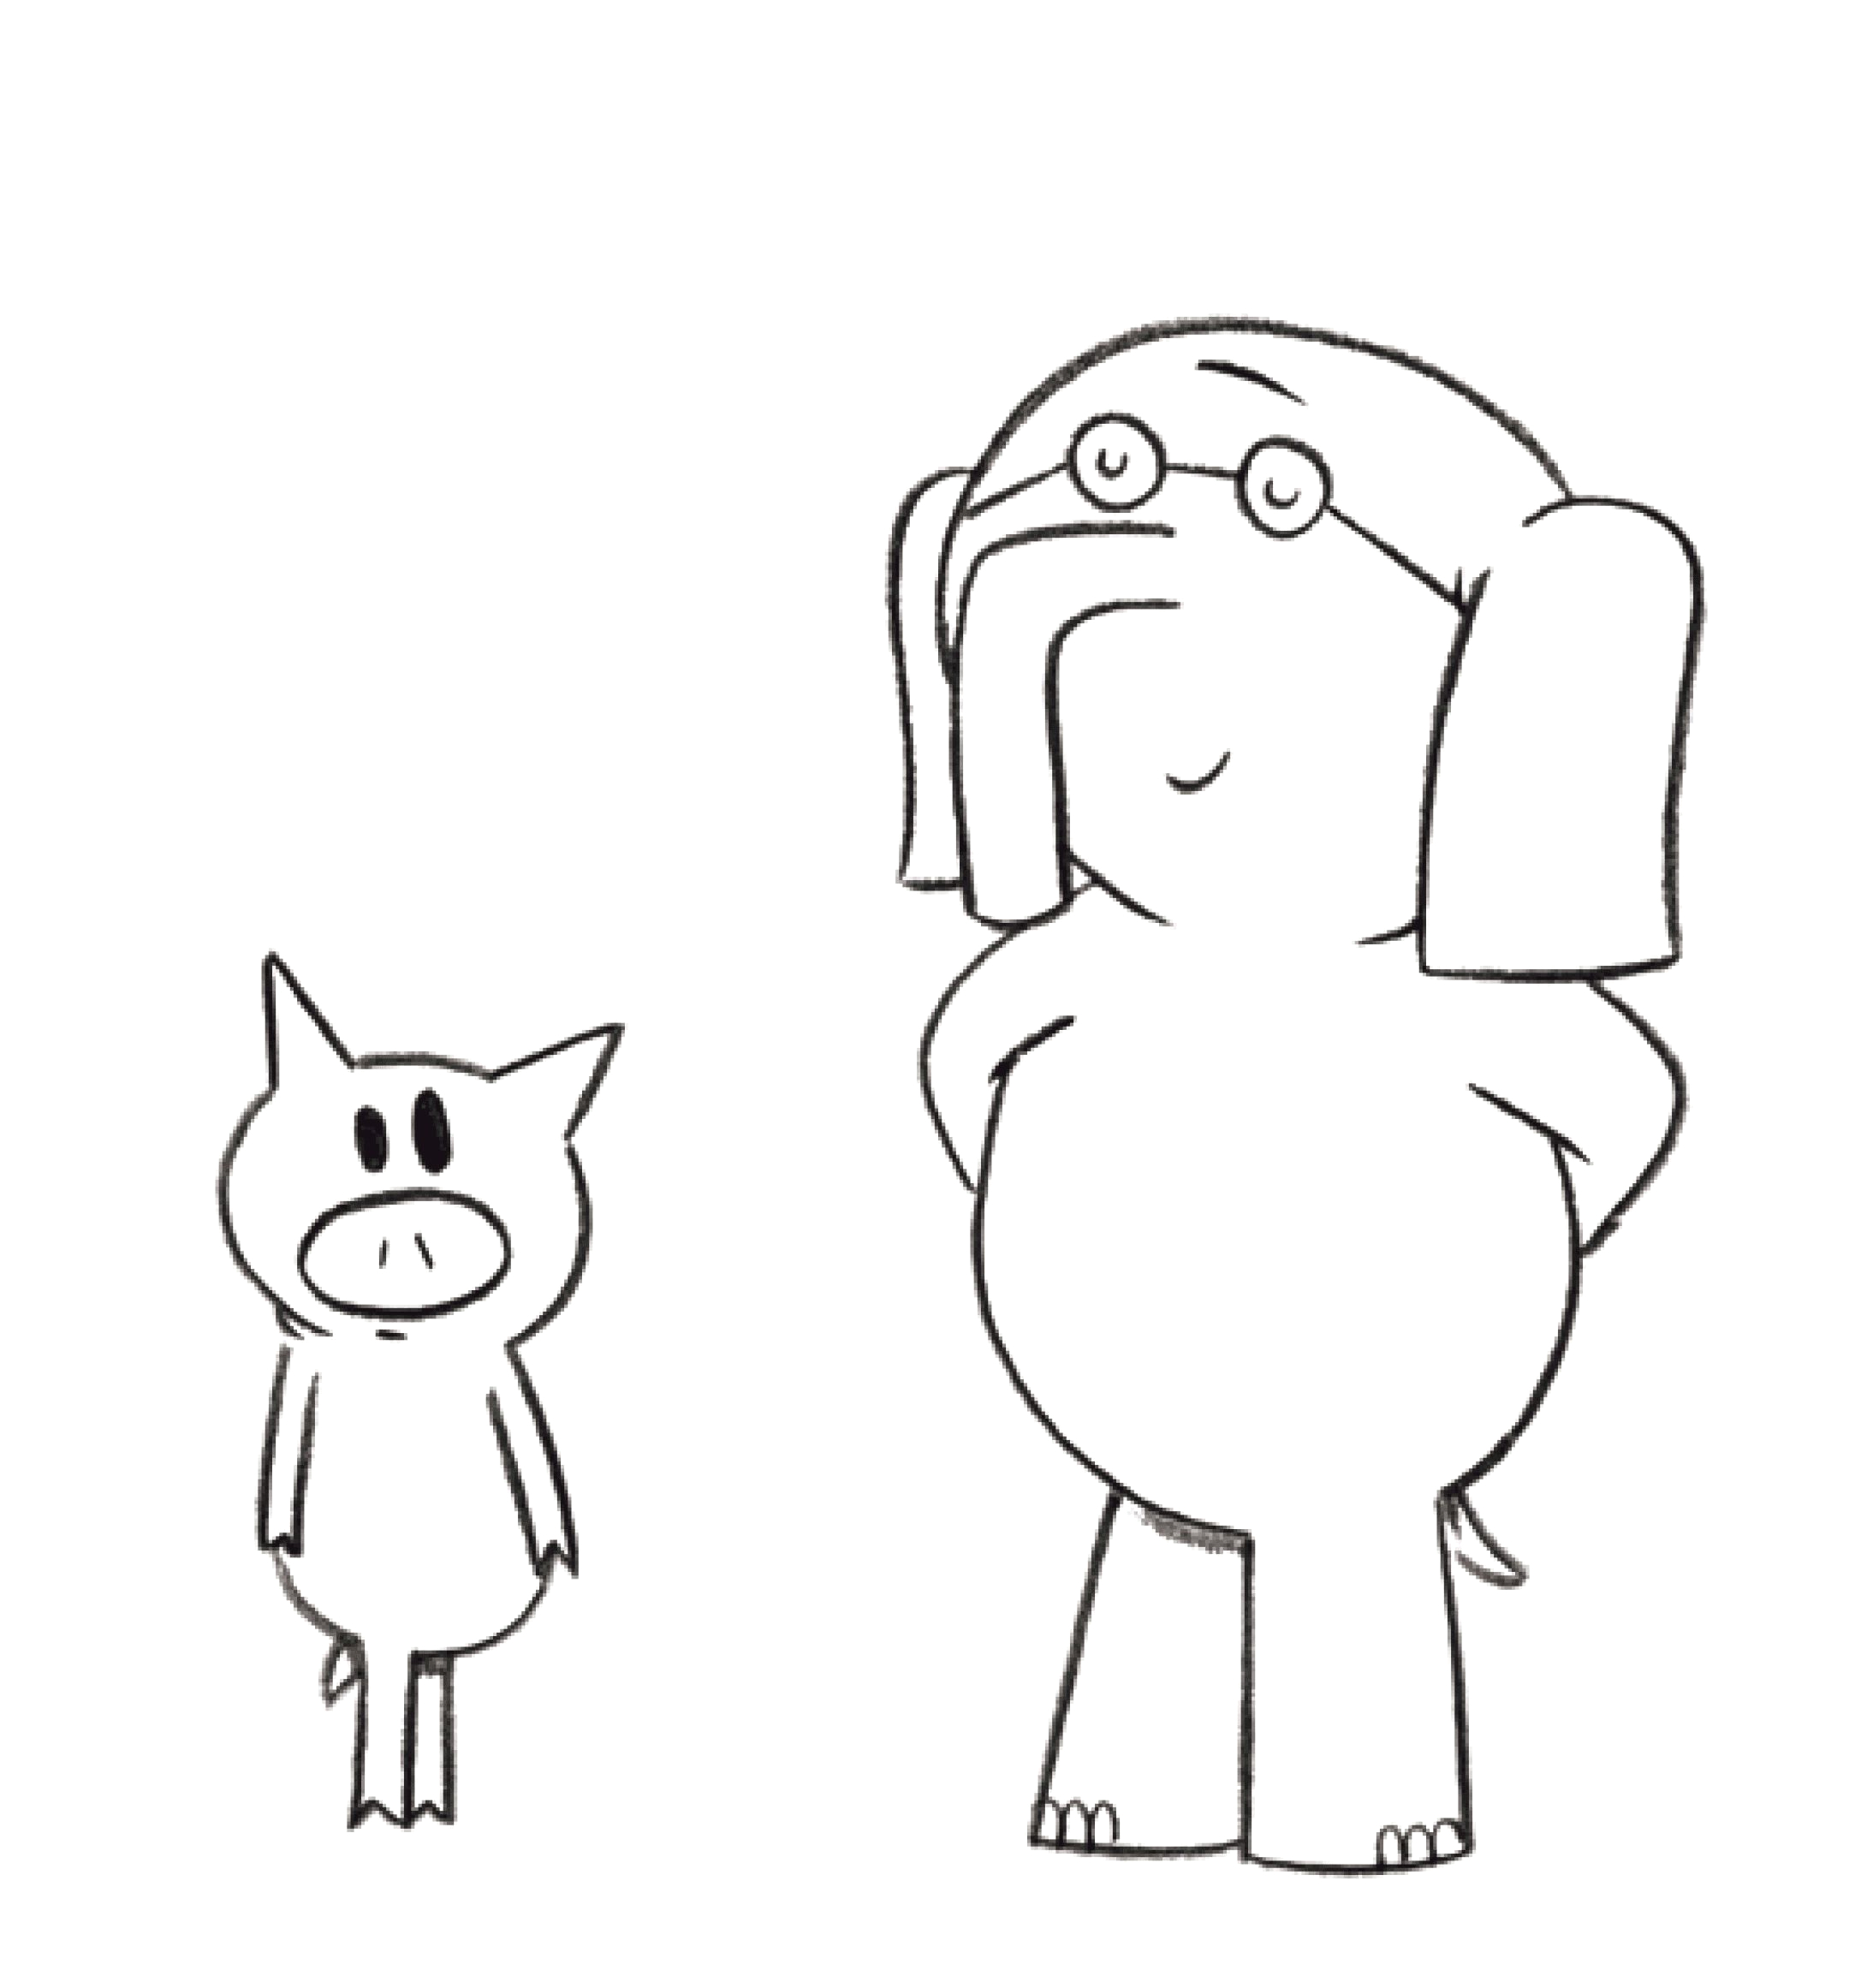 Free Printable Elephant and Piggie Coloring Pages Mo Willems Coloring Pages Elephant and Piggie Coloring Home